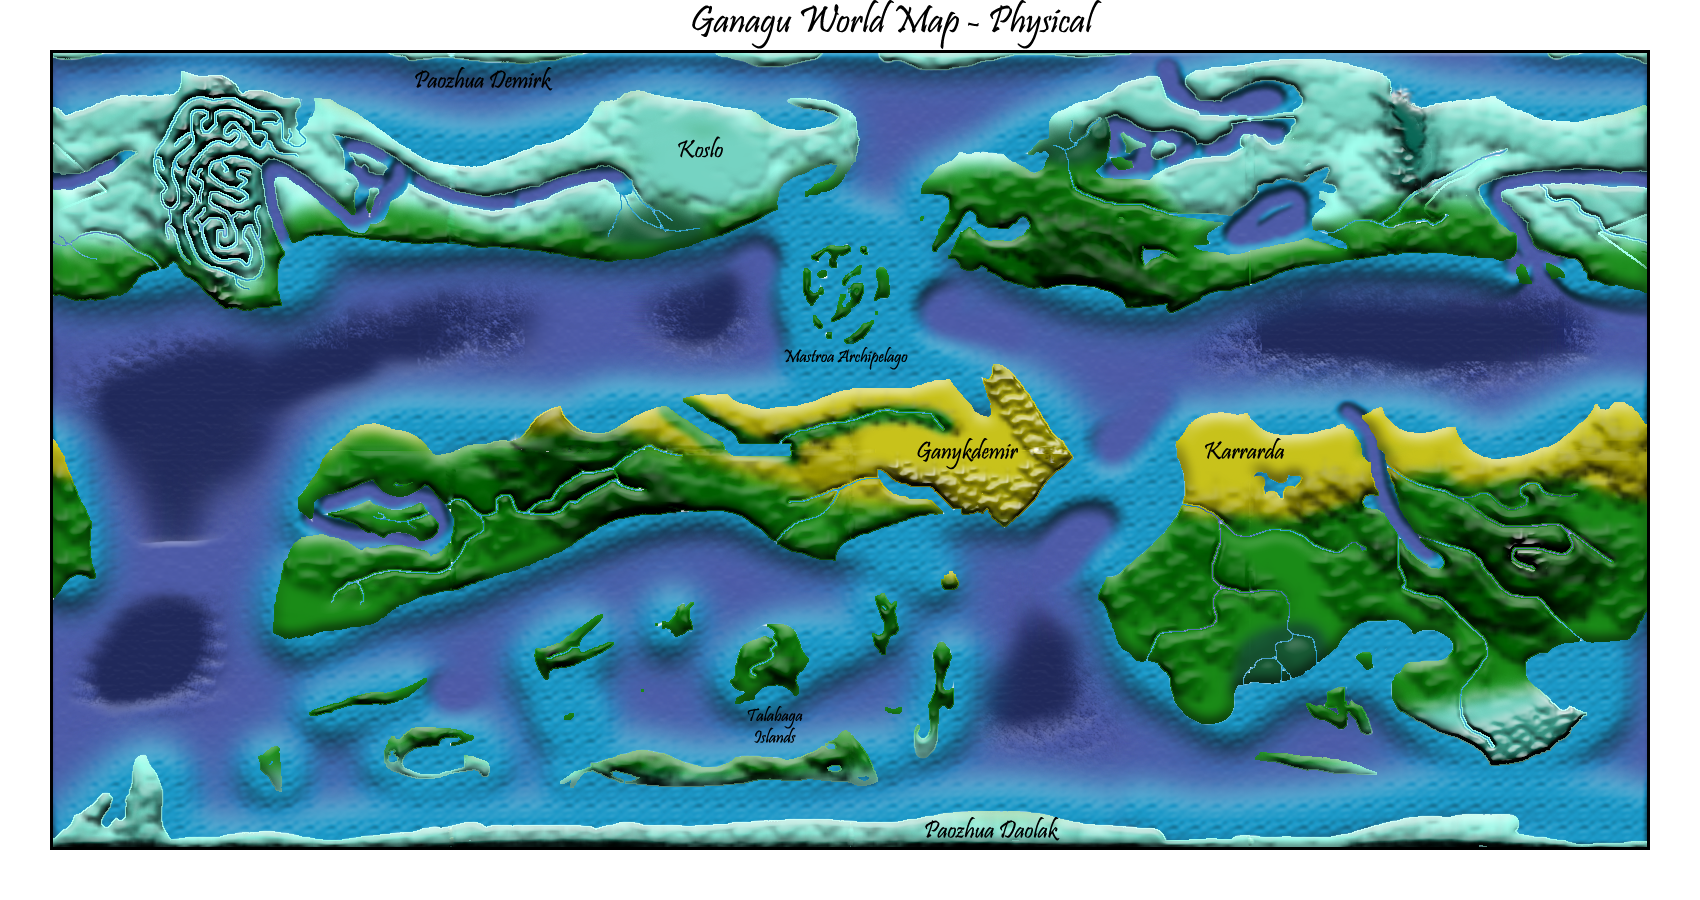 Image Ganagu World Map Final Physical Labeledpng Constructed - World map labeled